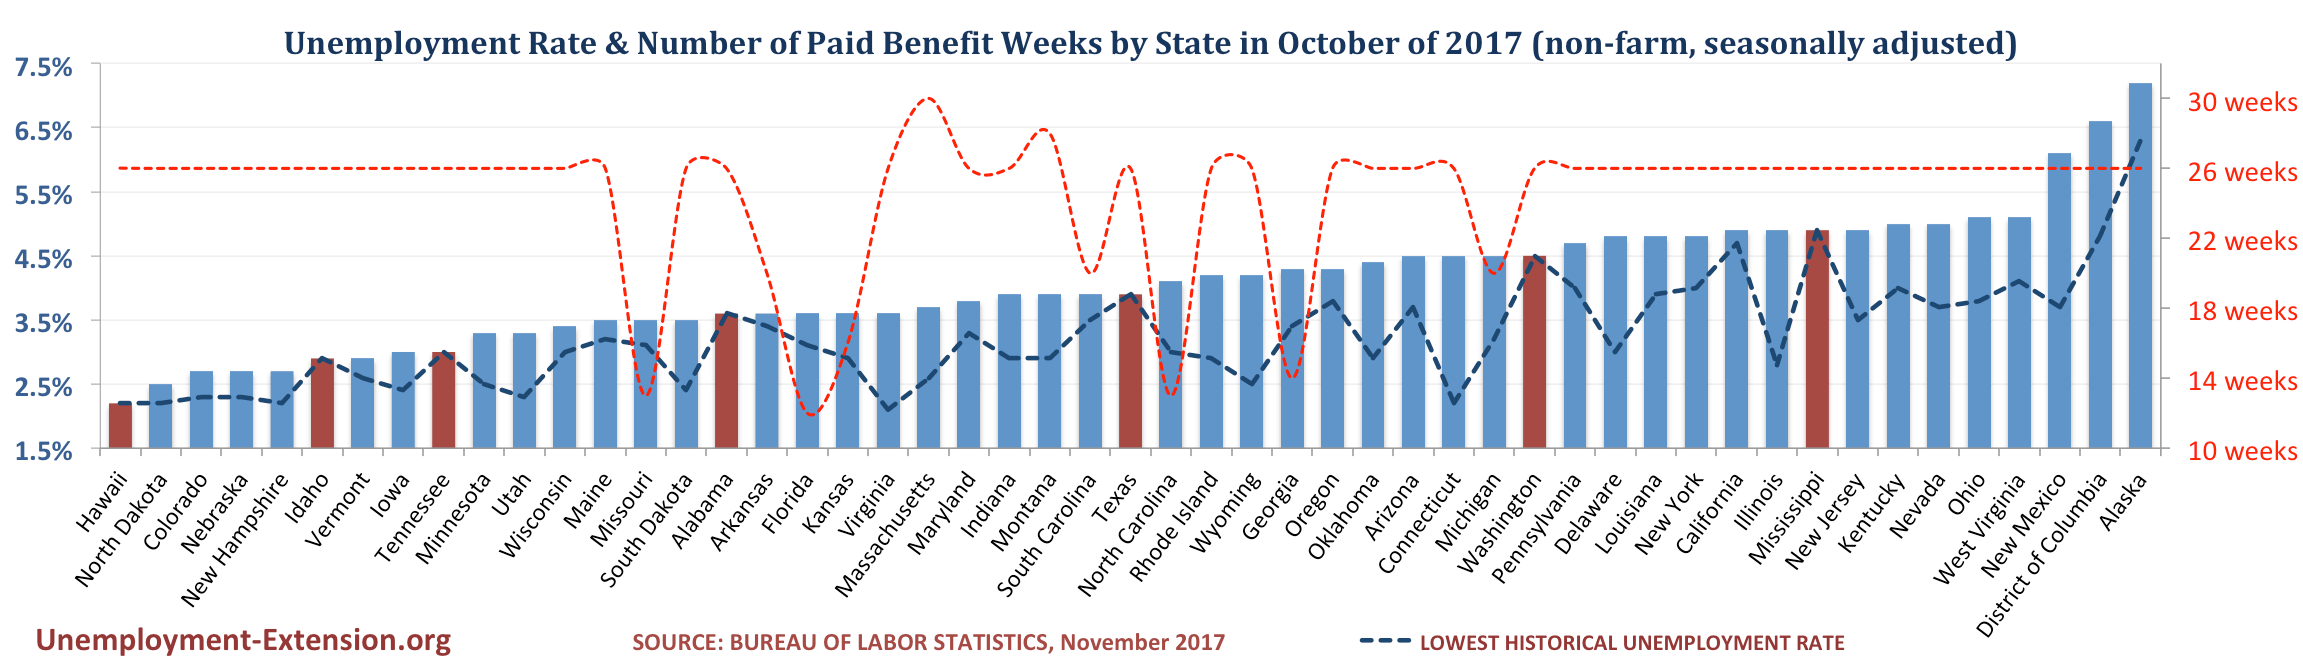 Unemployment Rate and Number of Paid Unemployment Benefit weeks by State (non-farm, seasonally adjusted) in November of 2017